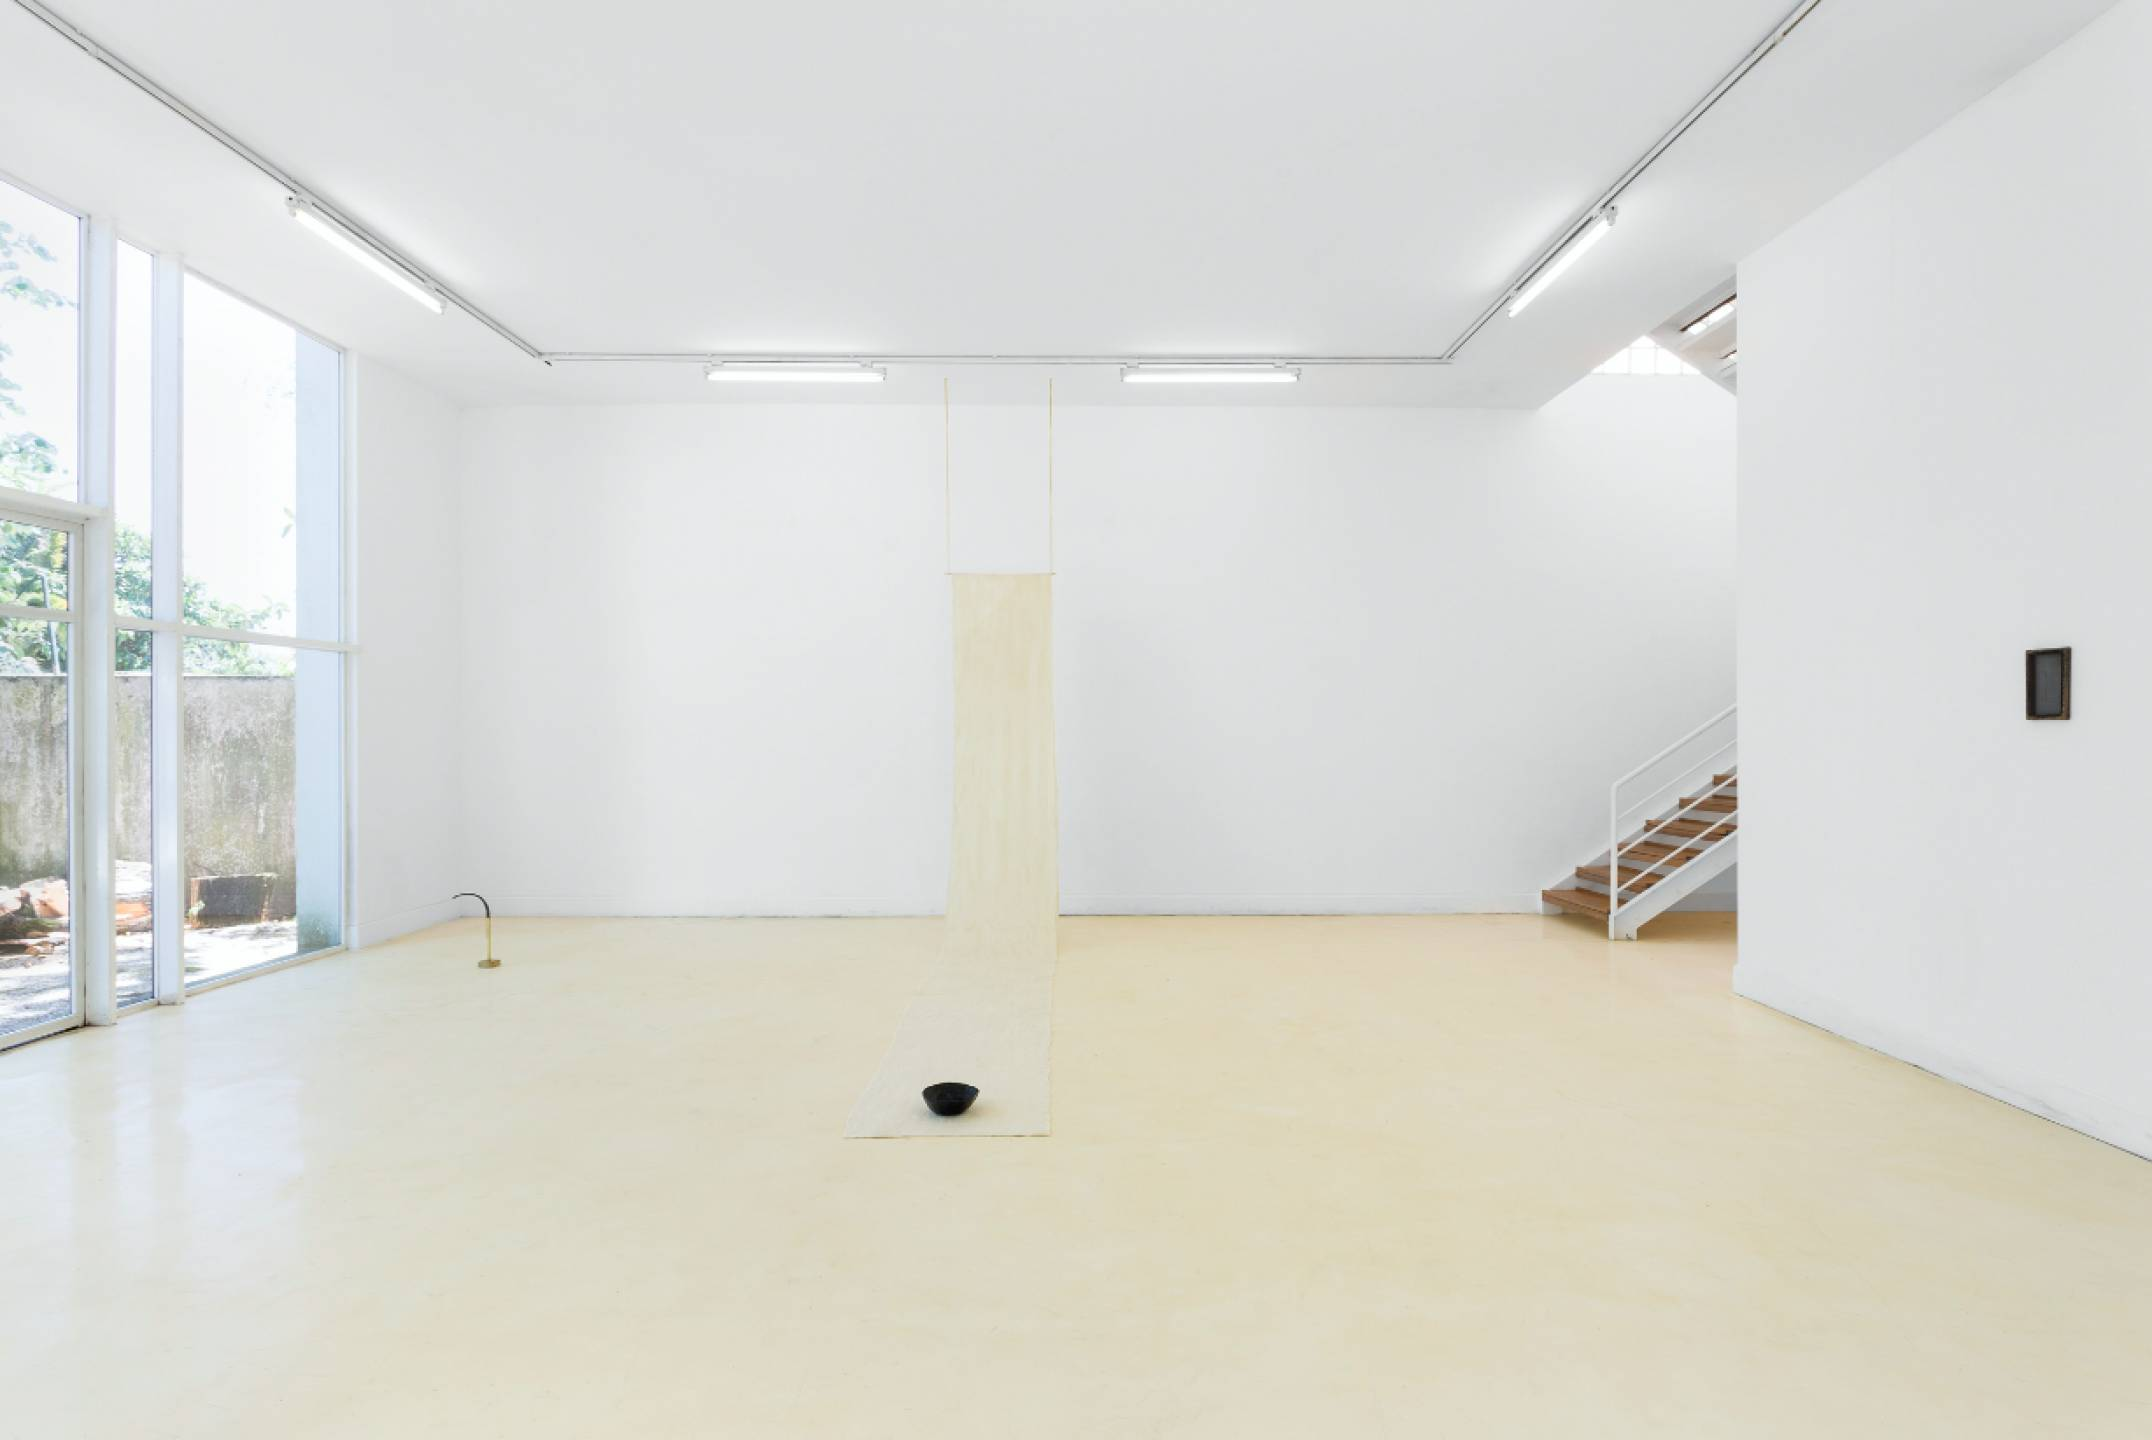 Paloma Bosquê, <em>The Hollow and The Seam</em>, Pavilhão Branco – Museu da Cidade, Lisbon, 2017 - Mendes Wood DM